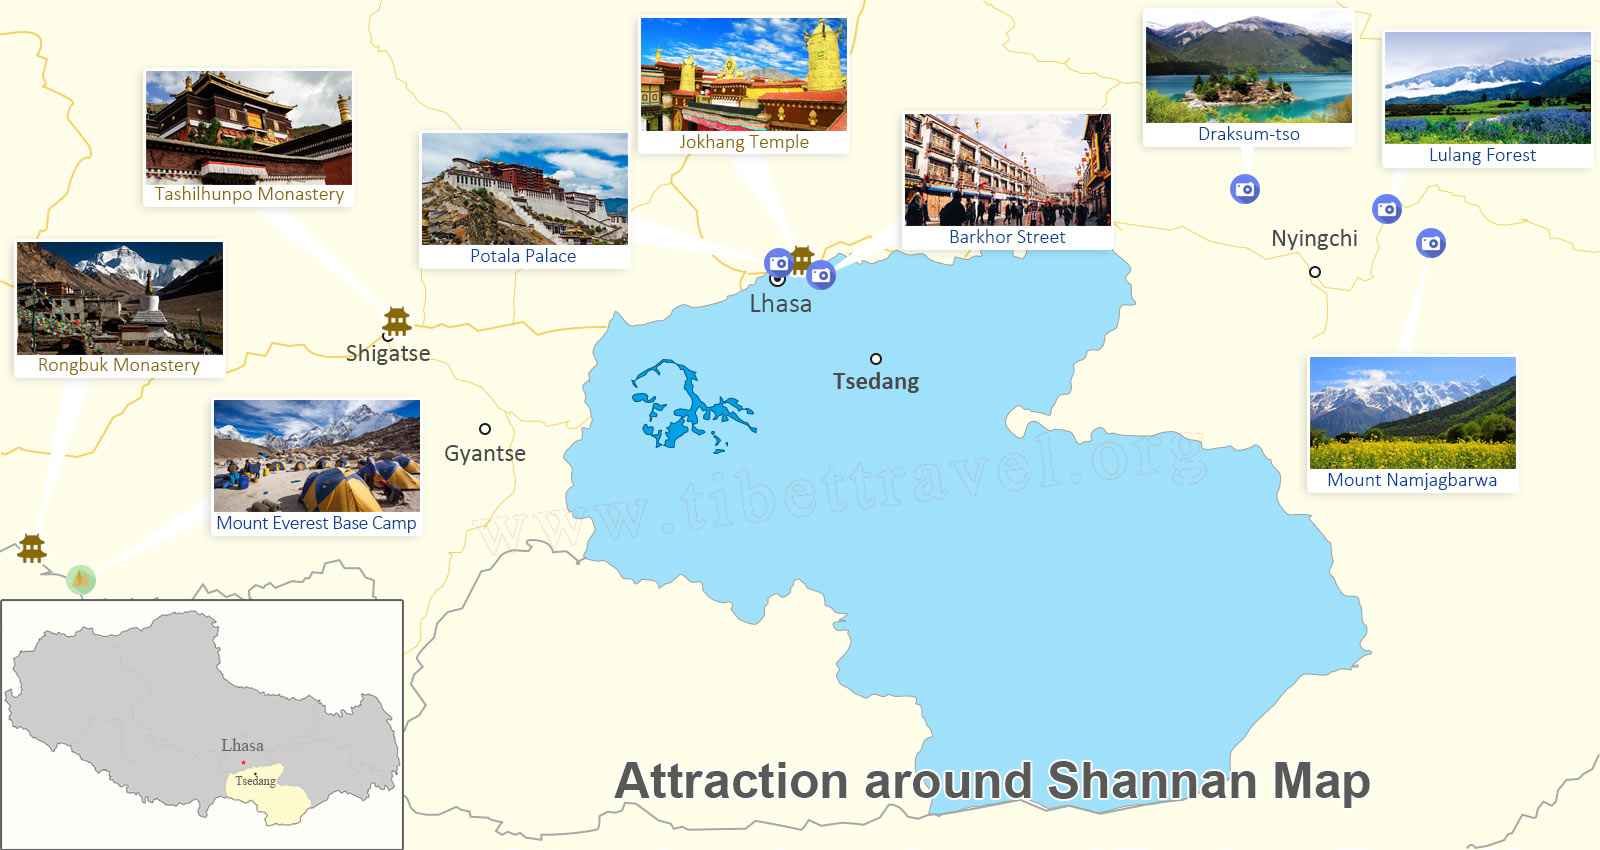 Attractions around Shannan Map